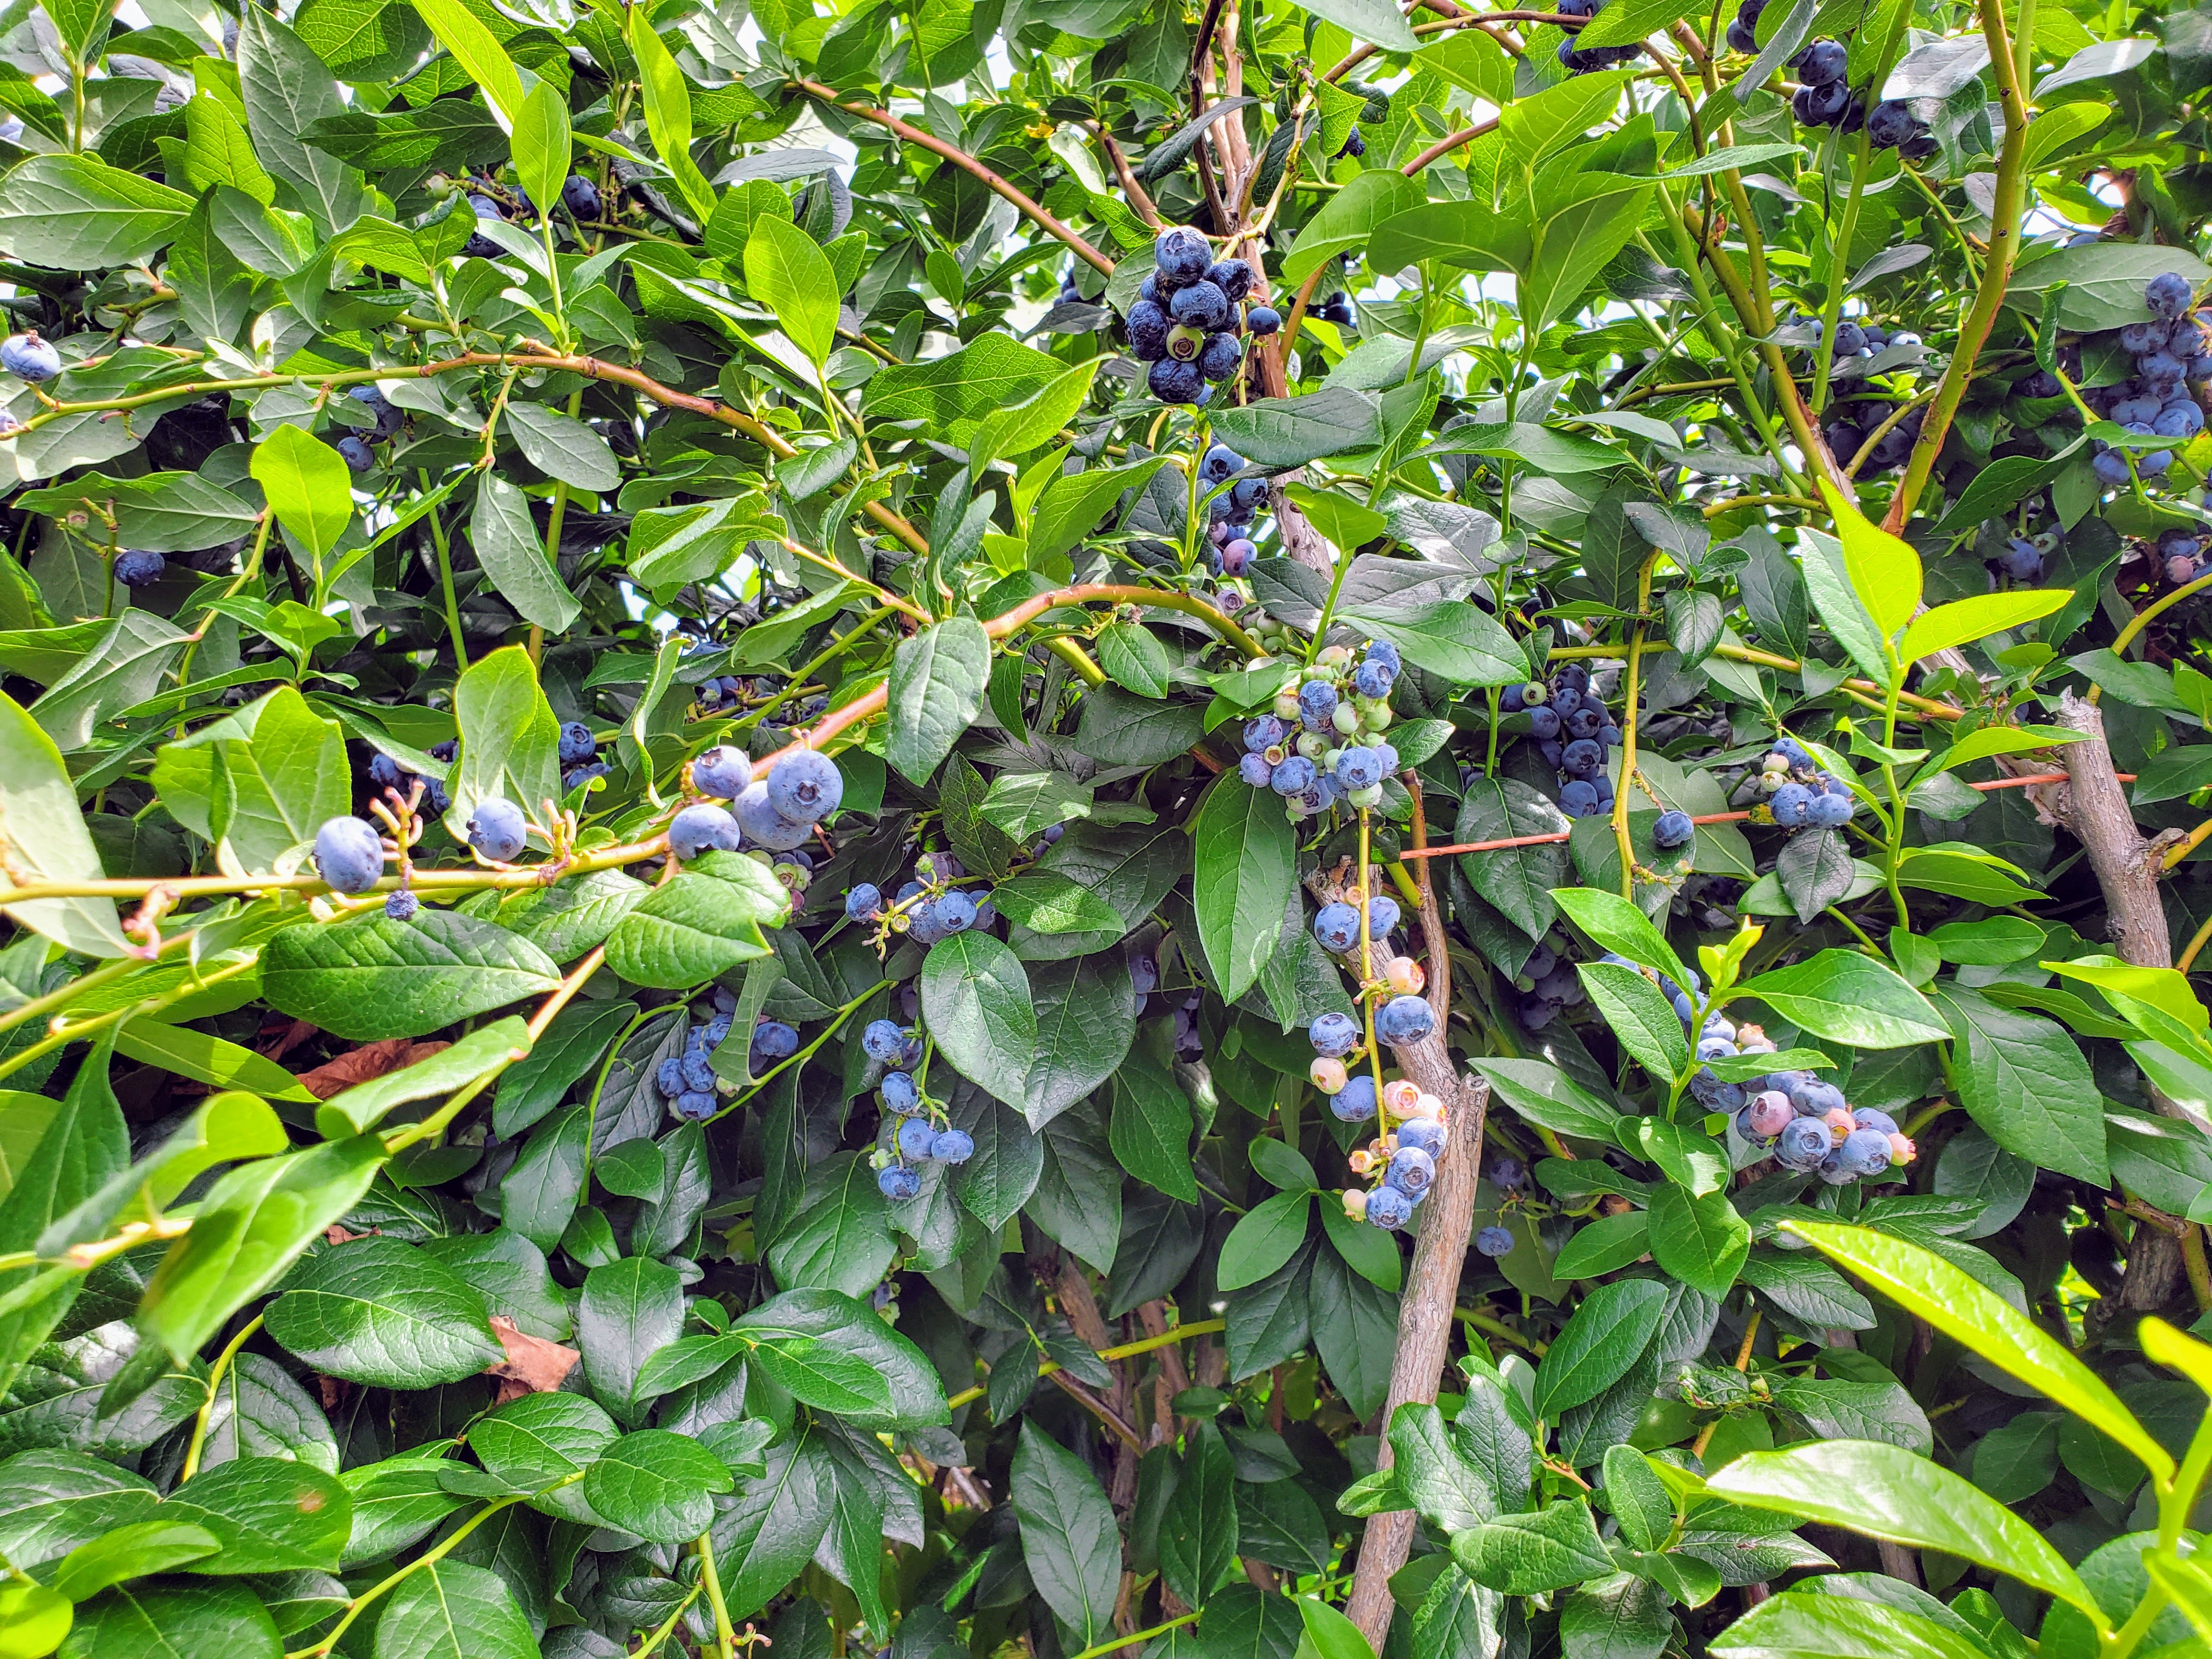 blueberry bushes with lots of rip berries.